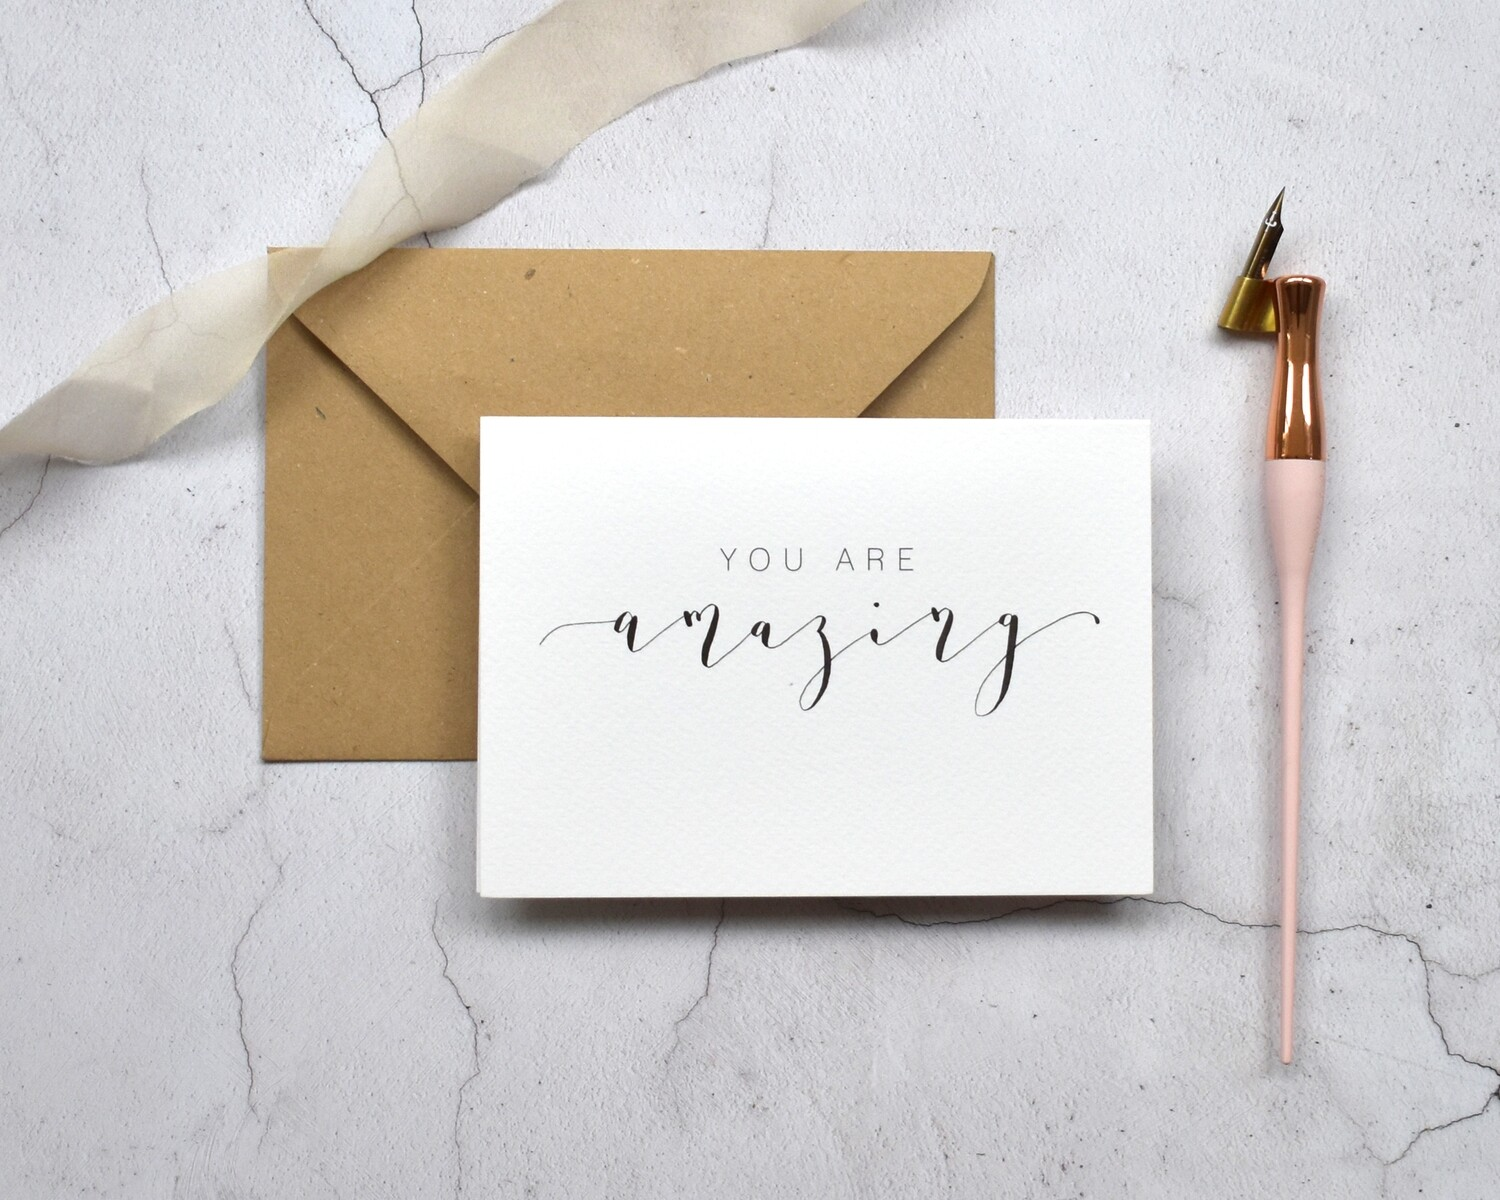 Bespoke You Are card